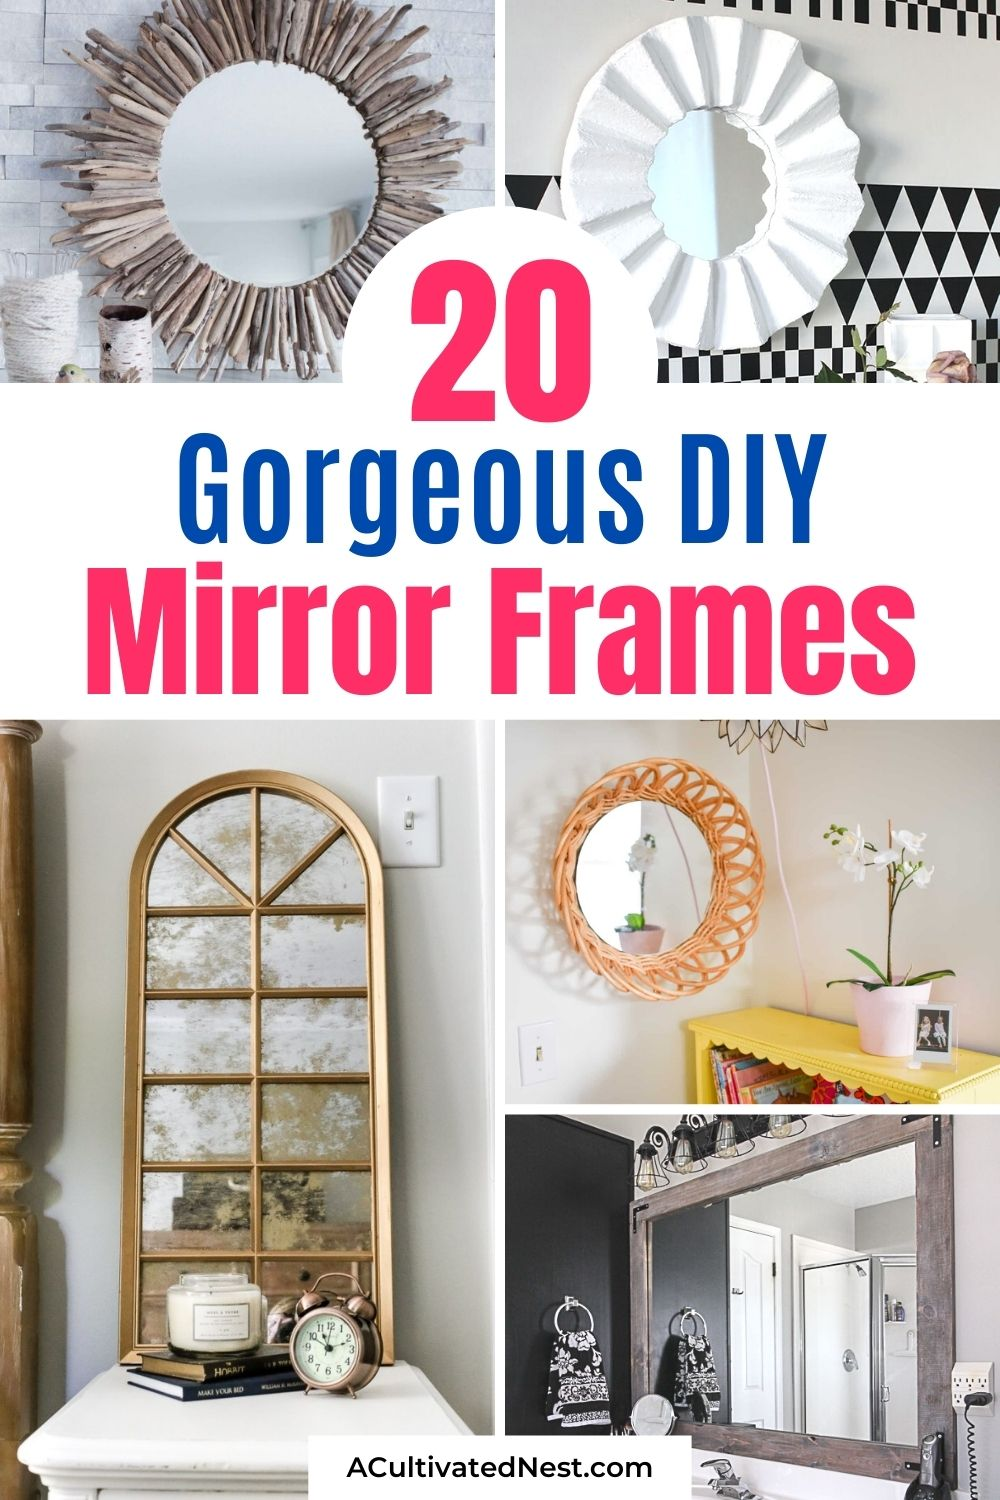 20 Fantastic DIY Mirror Frame Ideas- If you have a space that needs some updating, consider adding one of these DIY mirror frames! There are so many gorgeous DIY mirrors that would look perfect in your bedroom, office, bathroom, or any other space! | #DIYs #diyProjects #diyMirrors #decor #ACultivatedNest